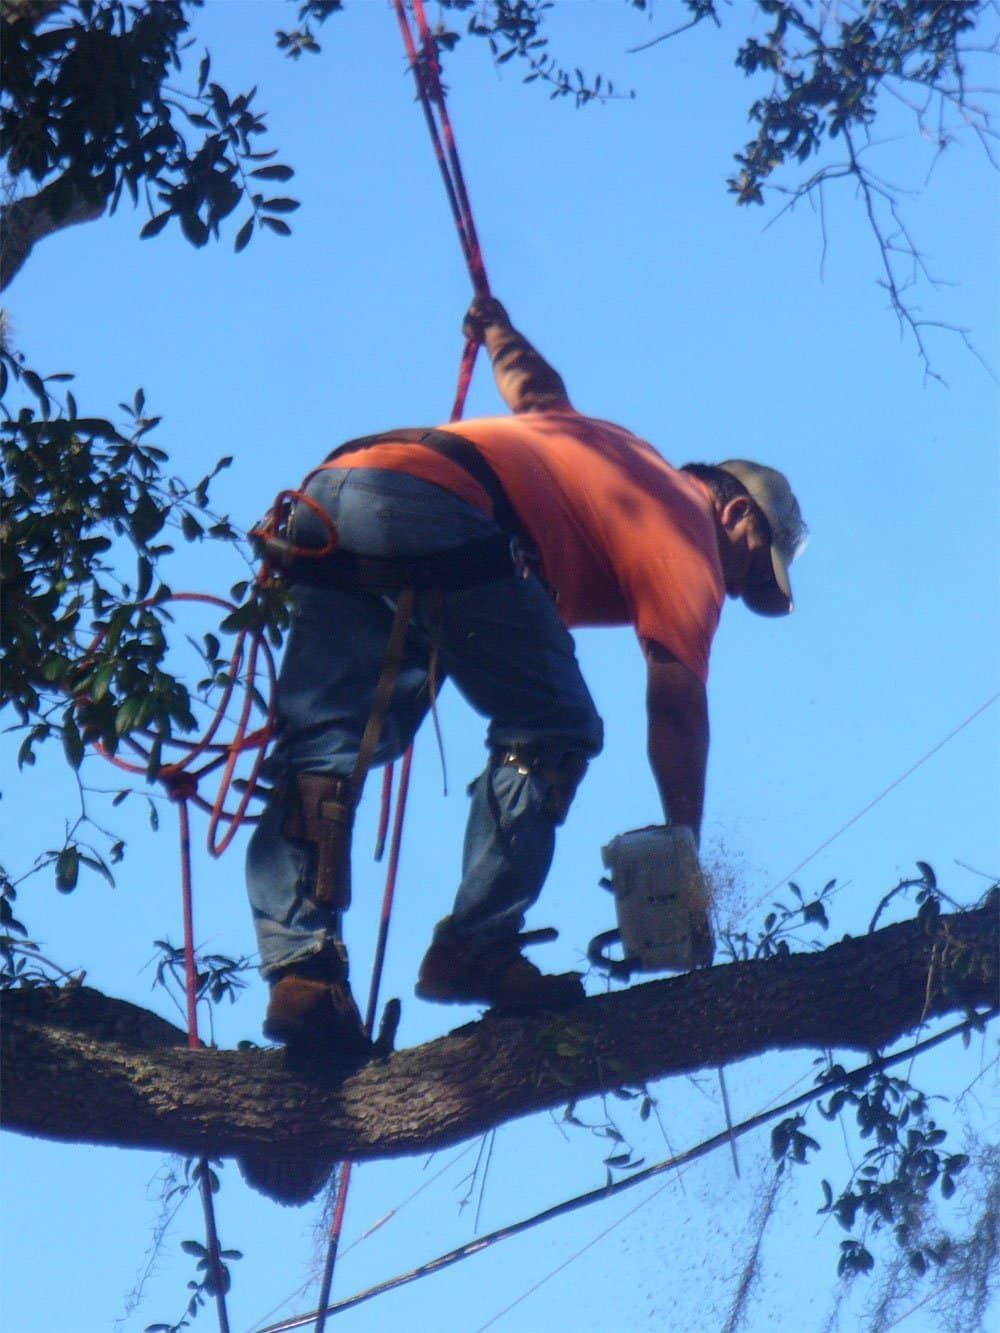 Joes tree service 1 photos 0 reviews services